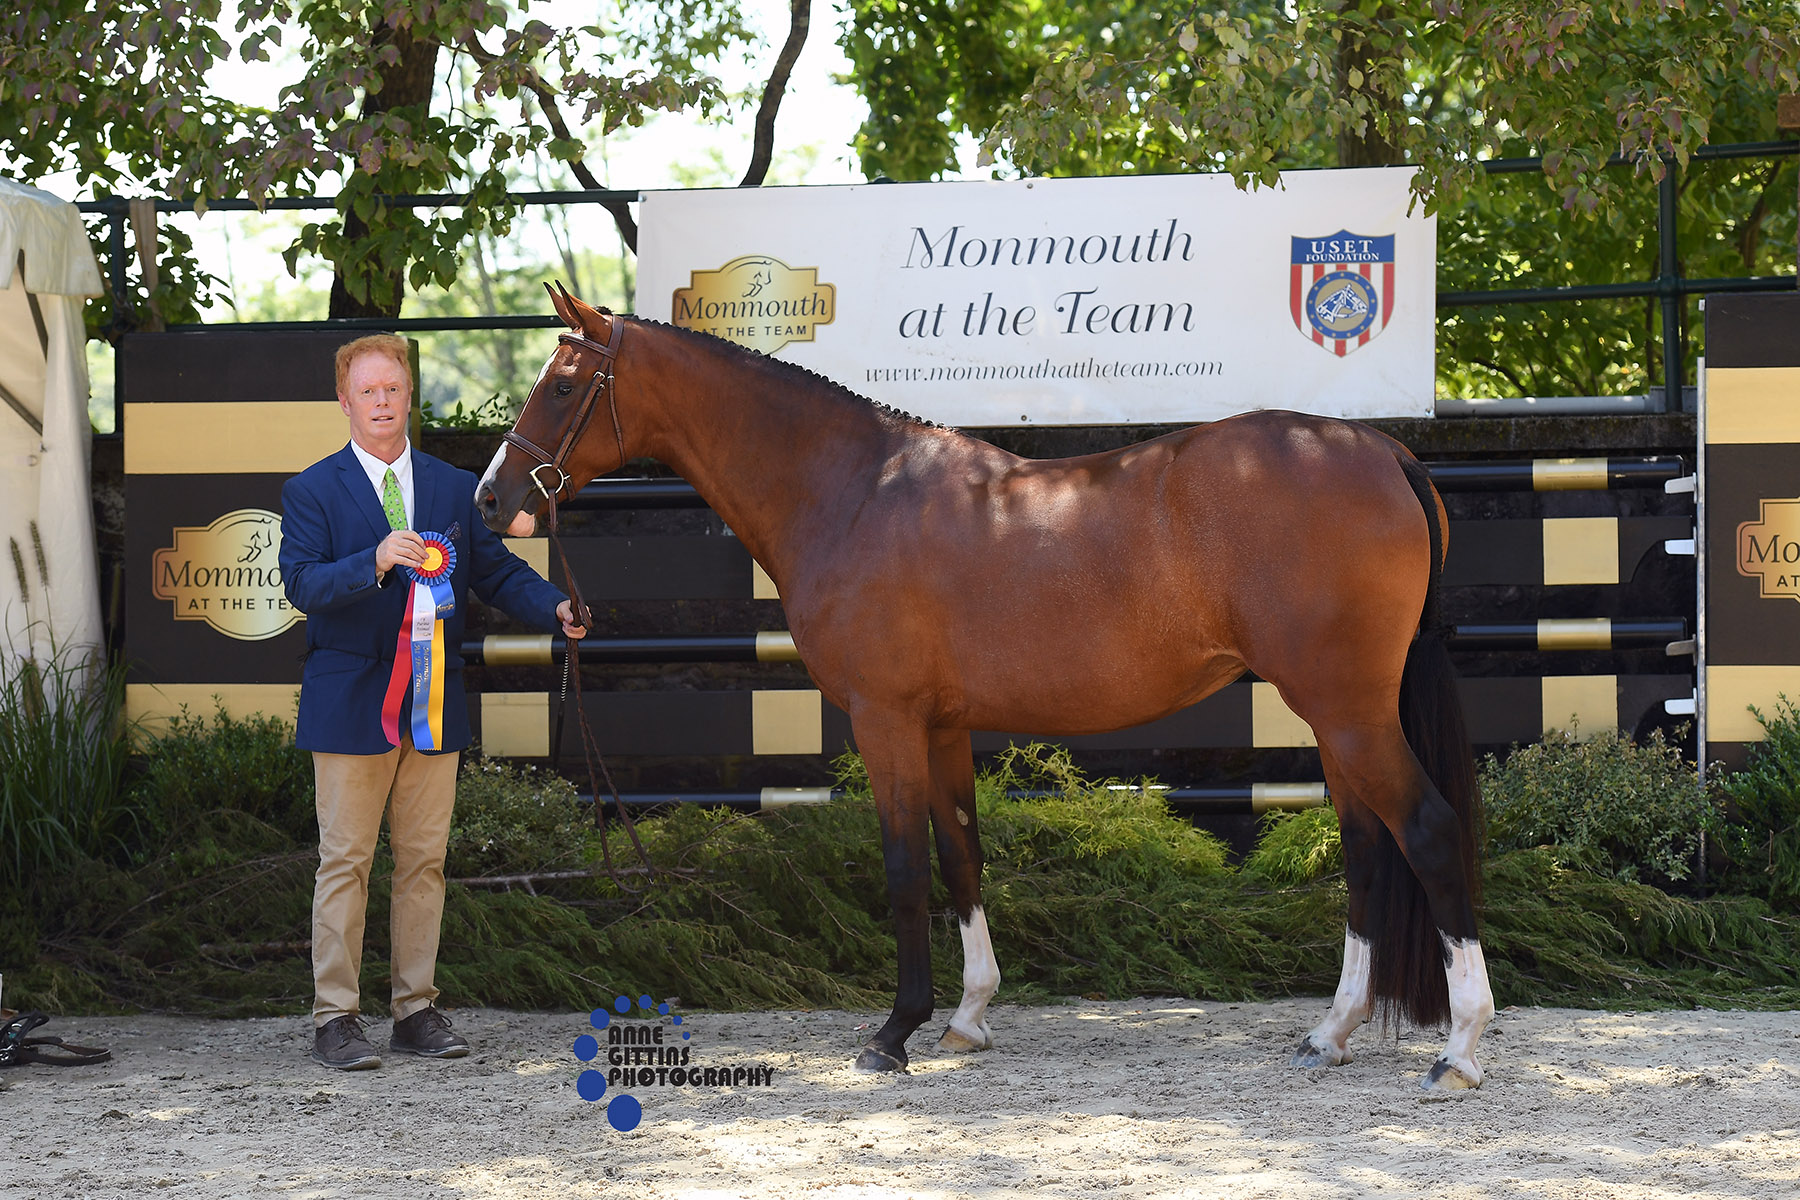 Ivy Lane, owned by Janet Rizzo and handled by Jay Raach, was named Best Young Horse of the breed classes Photo by Anne Gittins Photography